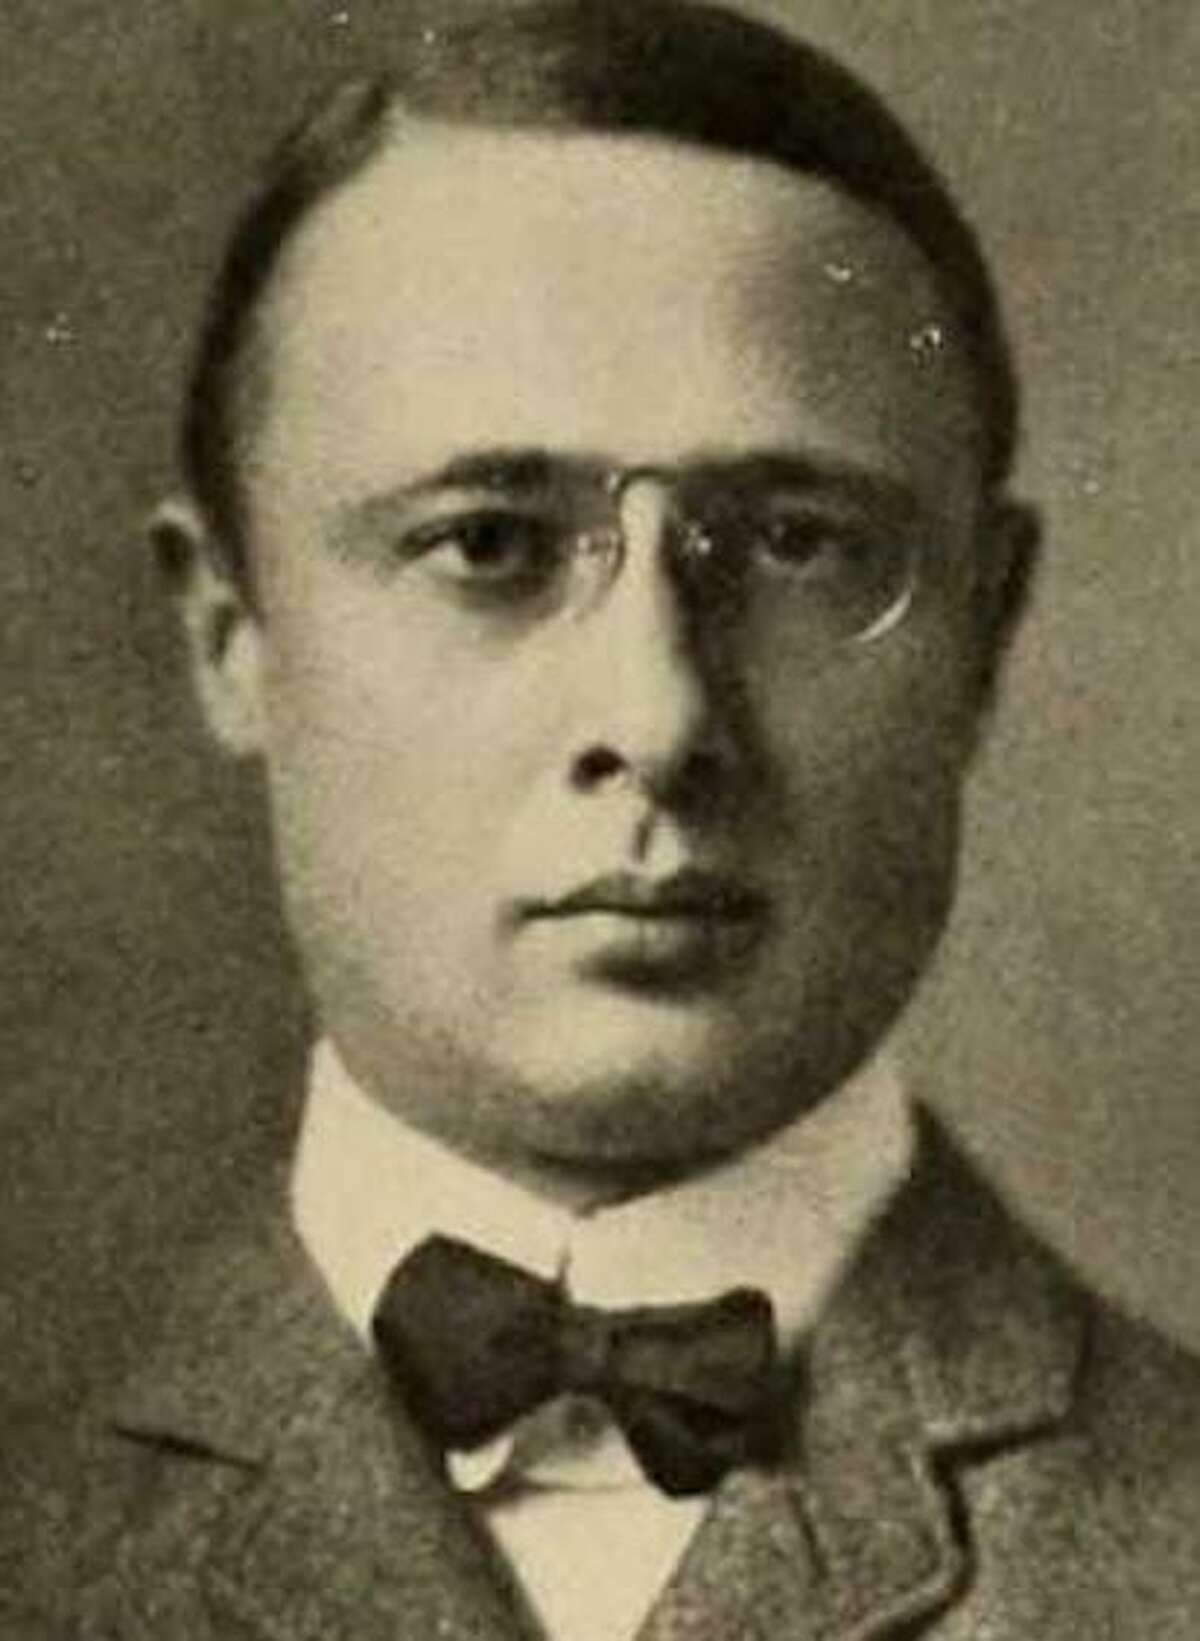 Broken-hearted after his wife died, Philip Wagoner, (pictured), head of Underwood Typewriters, lived mostly in the caretaker's cottage of the Ridgefield mansion he'd built for her.